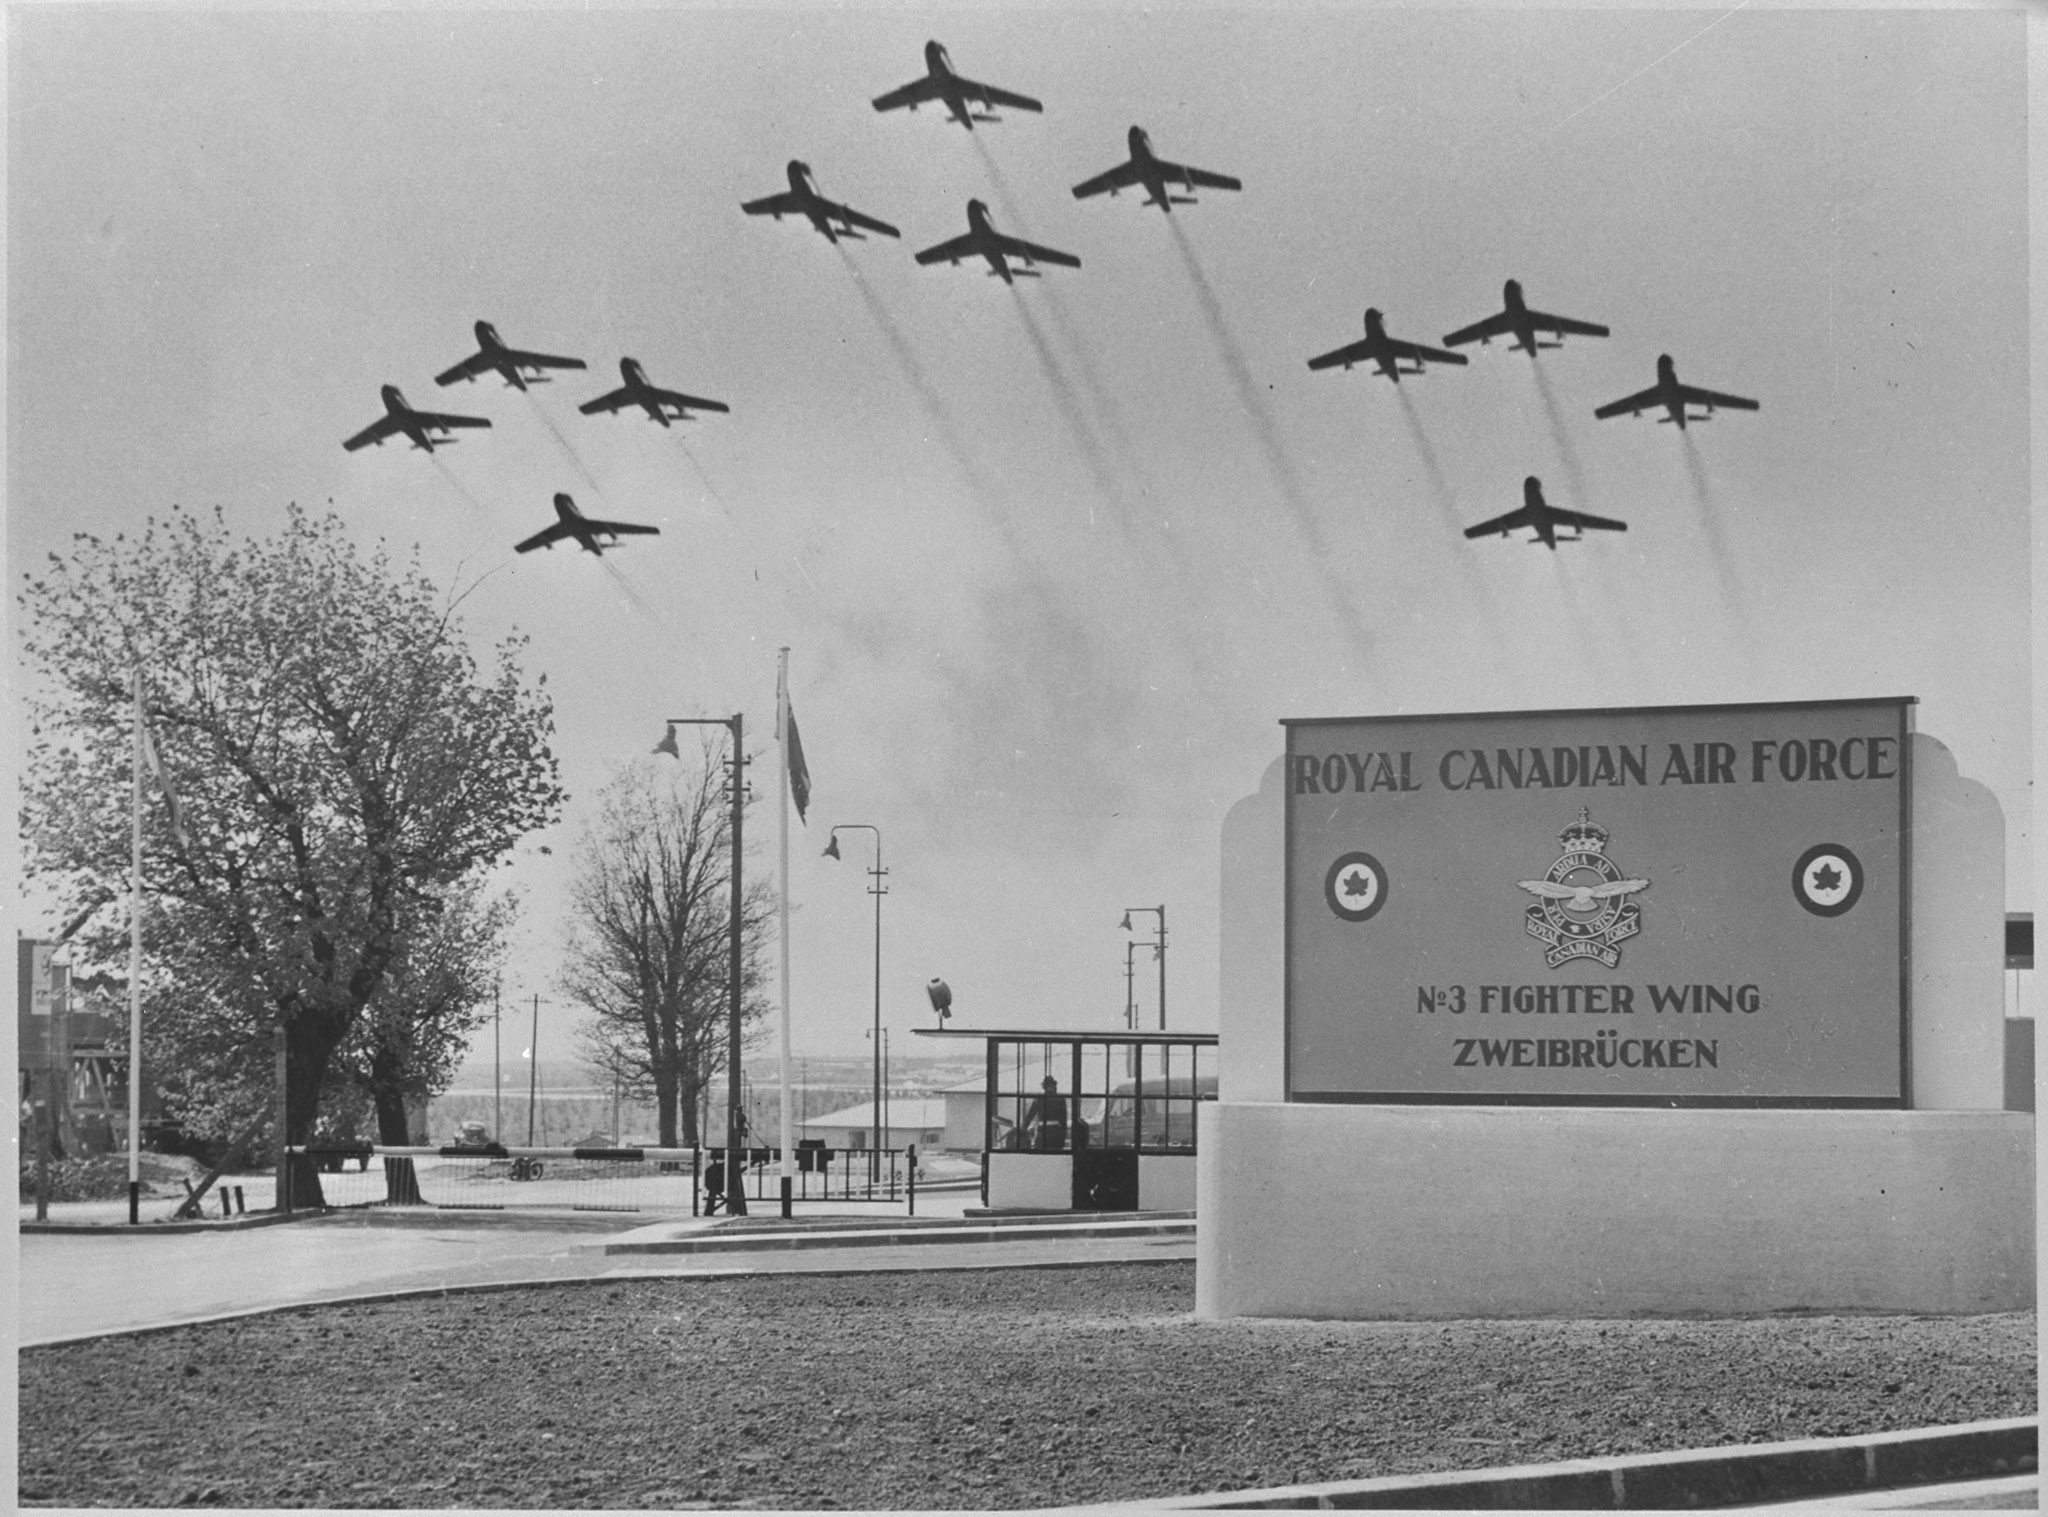 An undated composite photo of 12 Sabre aircraft over the RCAF station at No. 3 (Fighter) Wing in Zweibrucken, Germany. PHOTO: DND Archives, PL-82058